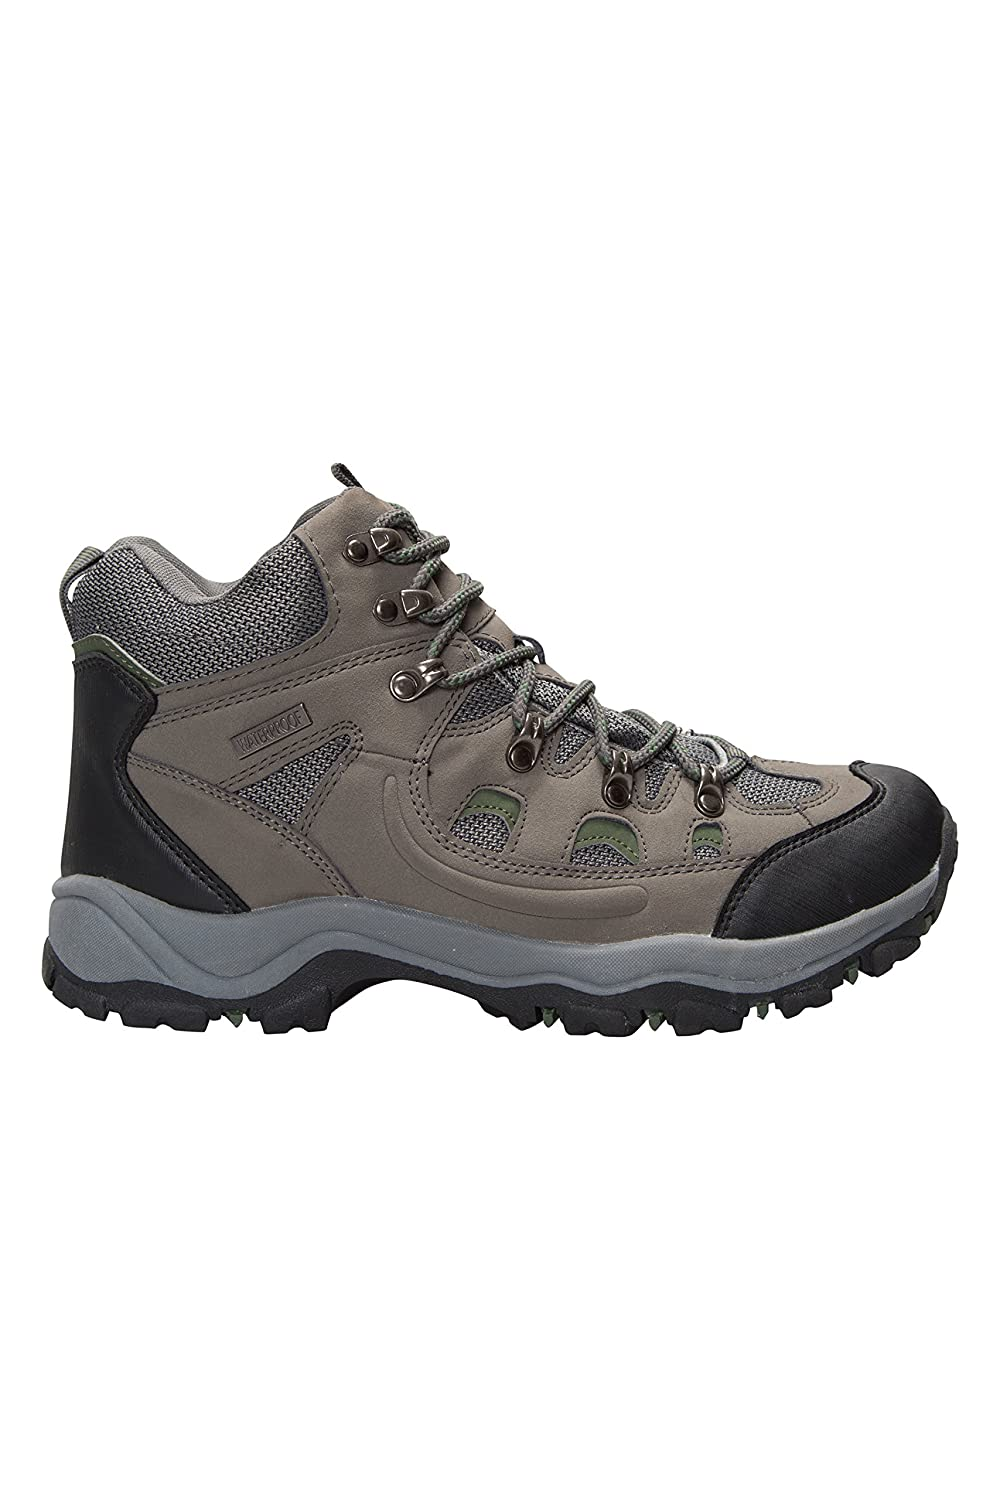 Mountain Warehouse Adventurer Mens Boots - Waterproof Rain Boots, Synthetic  & Textile Walking Shoes, Added Grip Mens All Season Shoes - Footwear For  Hiking ...